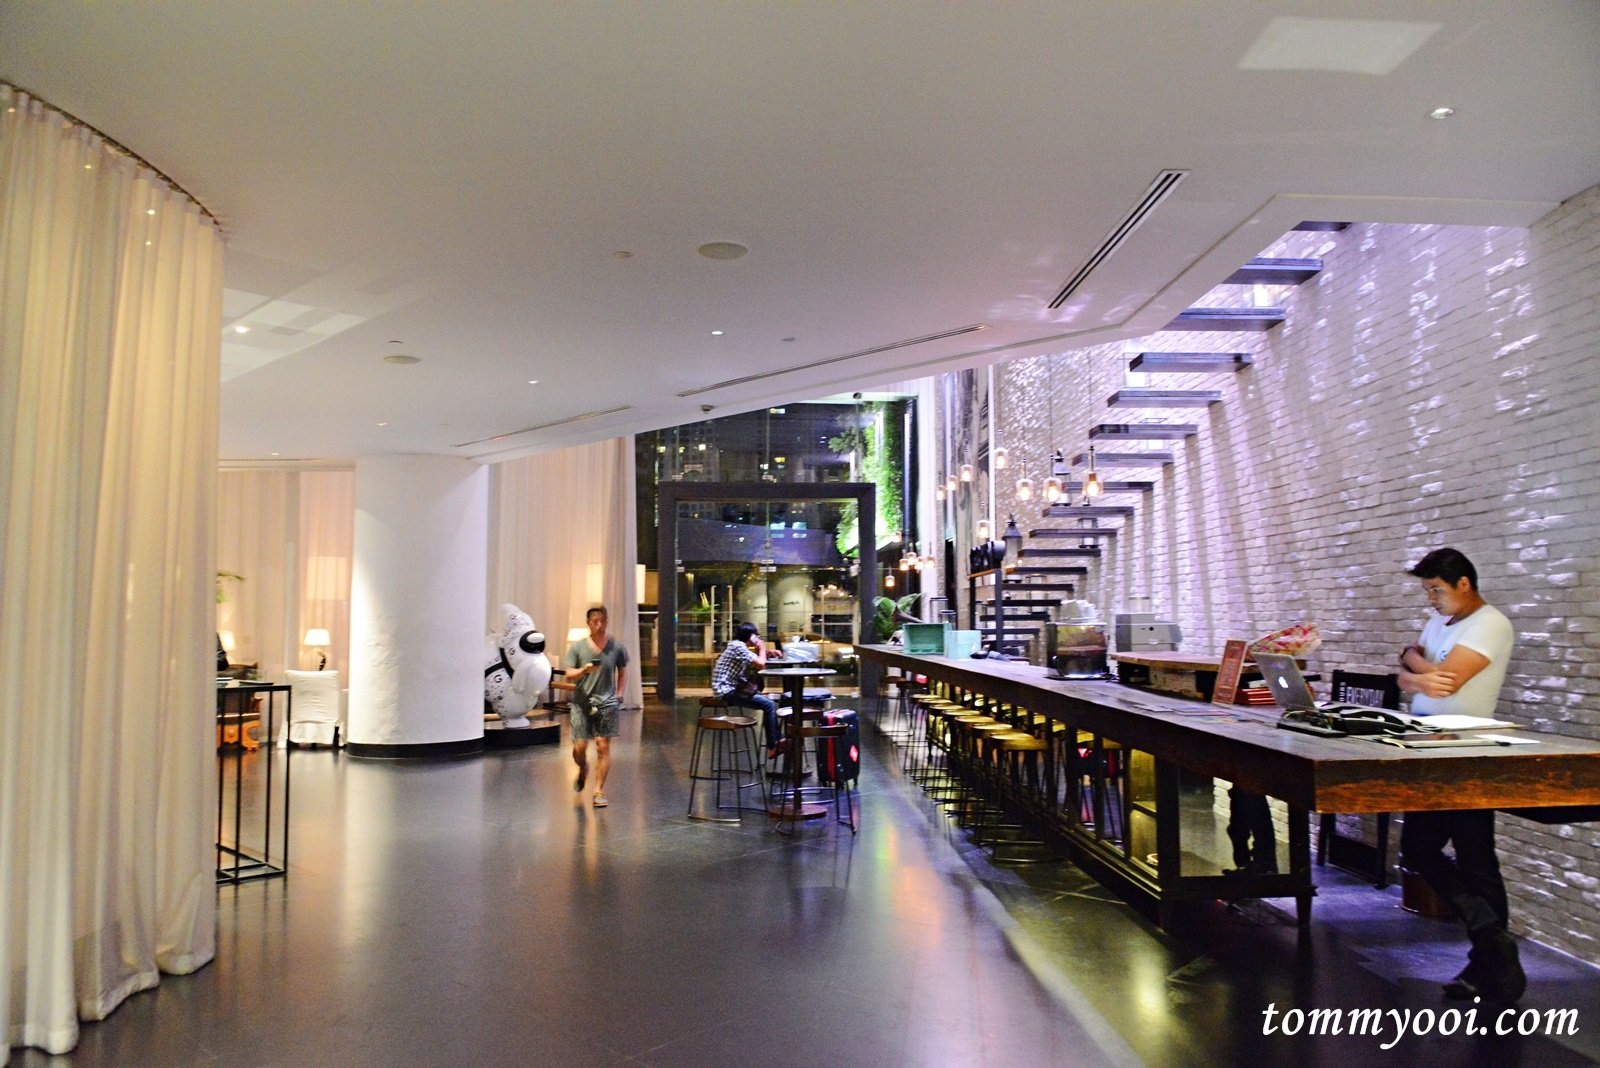 Pullman bangkok hotel g tommy ooi travel guide for Pullman hotel